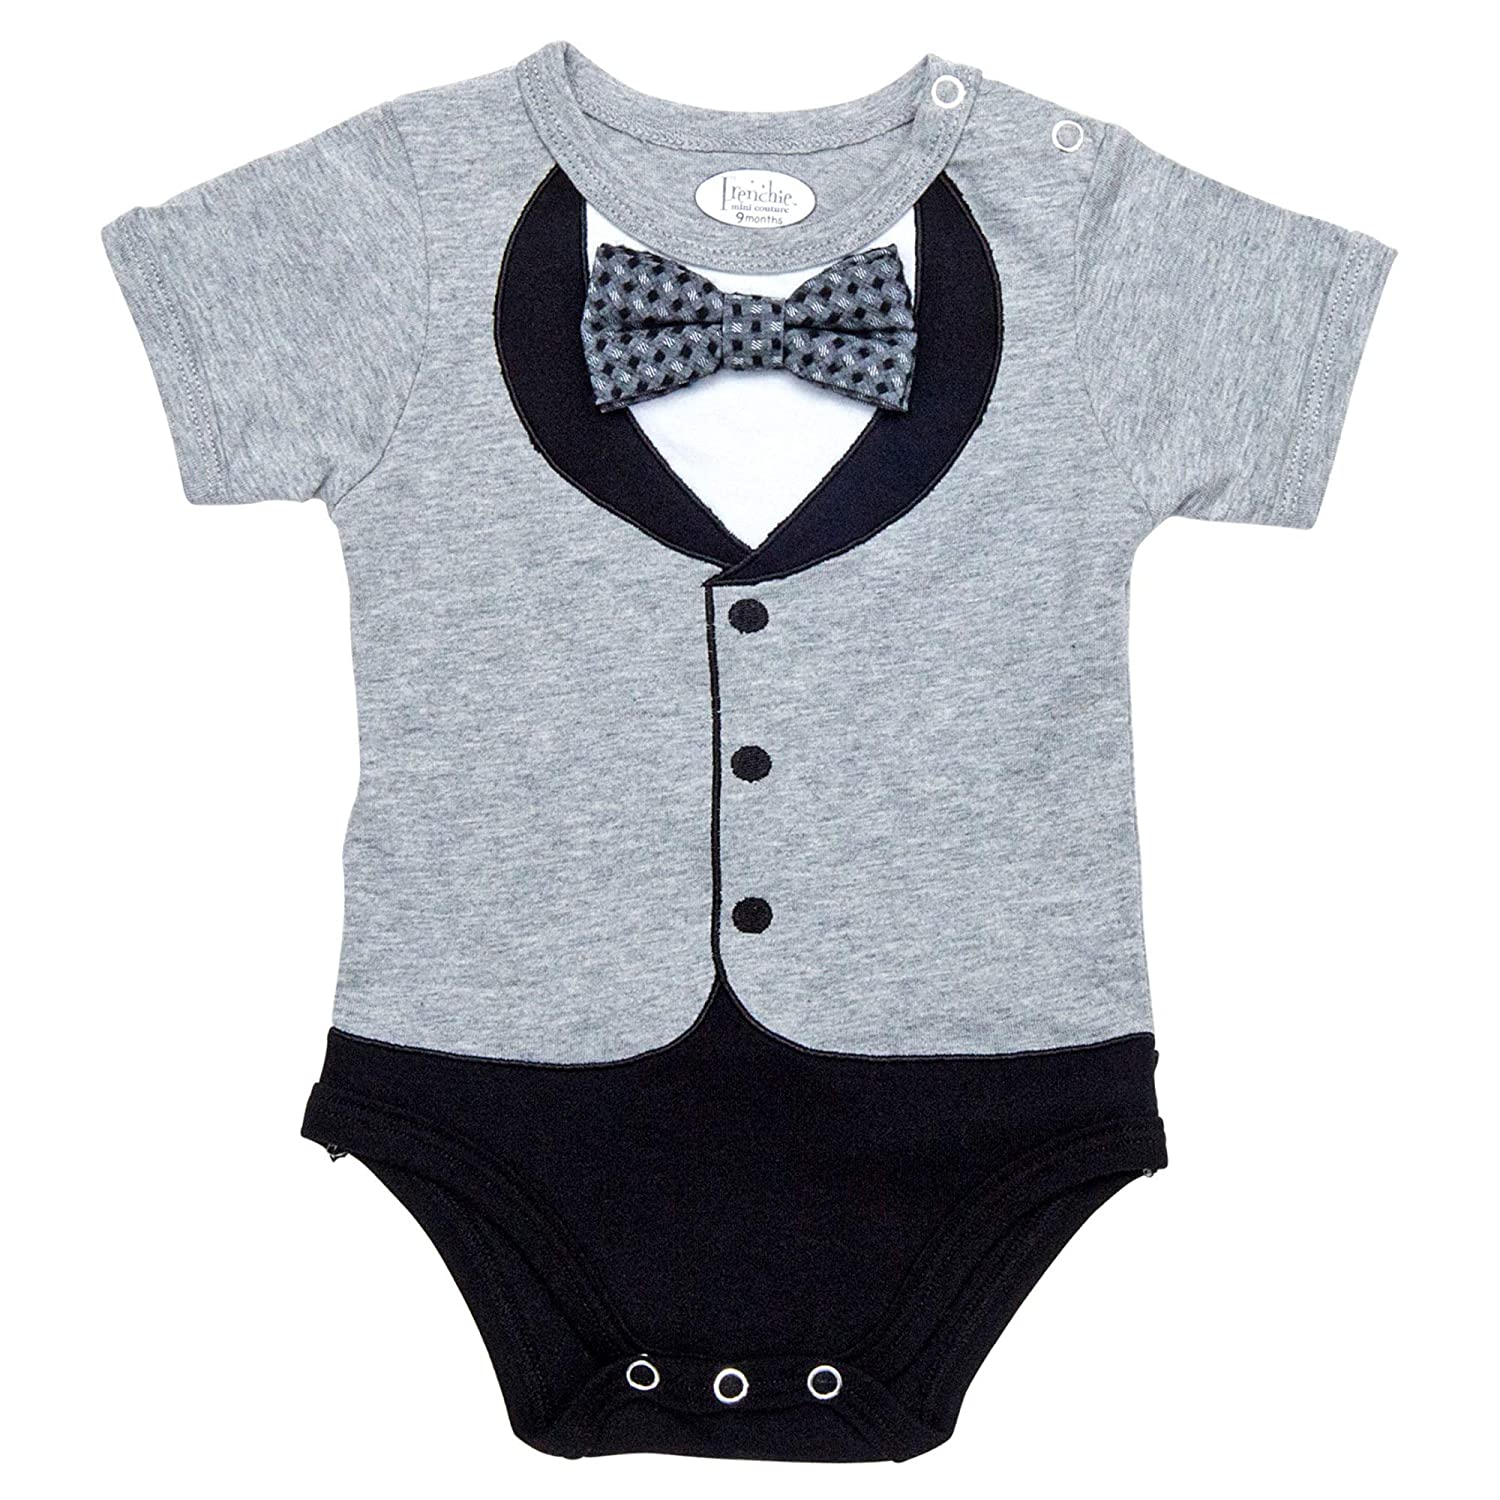 Baby Boys' Tuxedos, 100% Cotton Grey Tux with Grey Pattern Bowtie, 12 Months